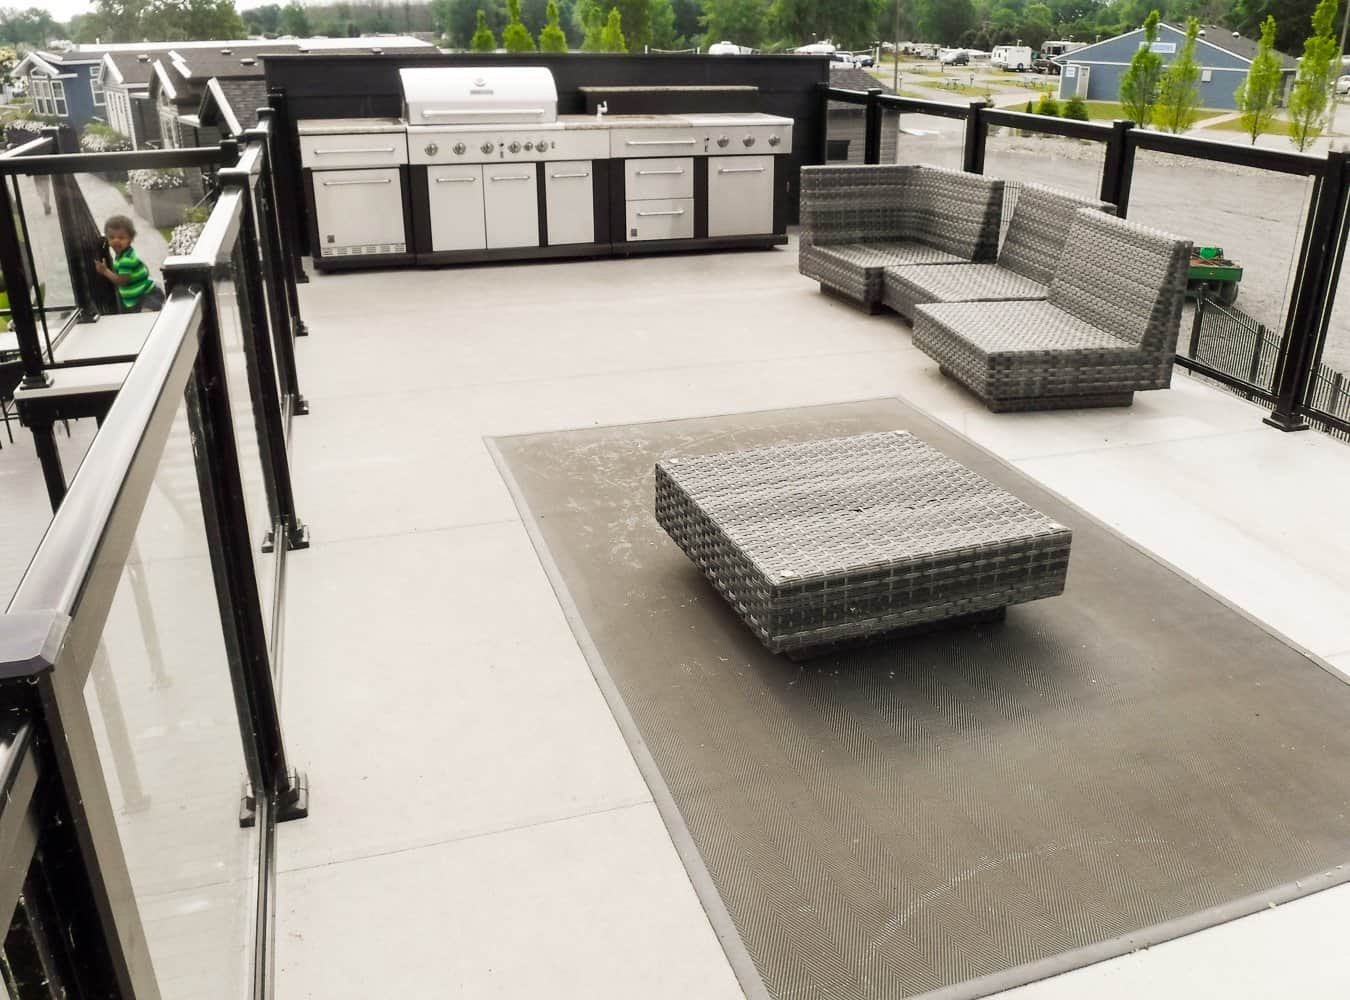 Make Vacay Matter More with Stays at Sherkston Shores! — Luxury Black Diamond Lakefront Rental Cottage Rooftop Patio